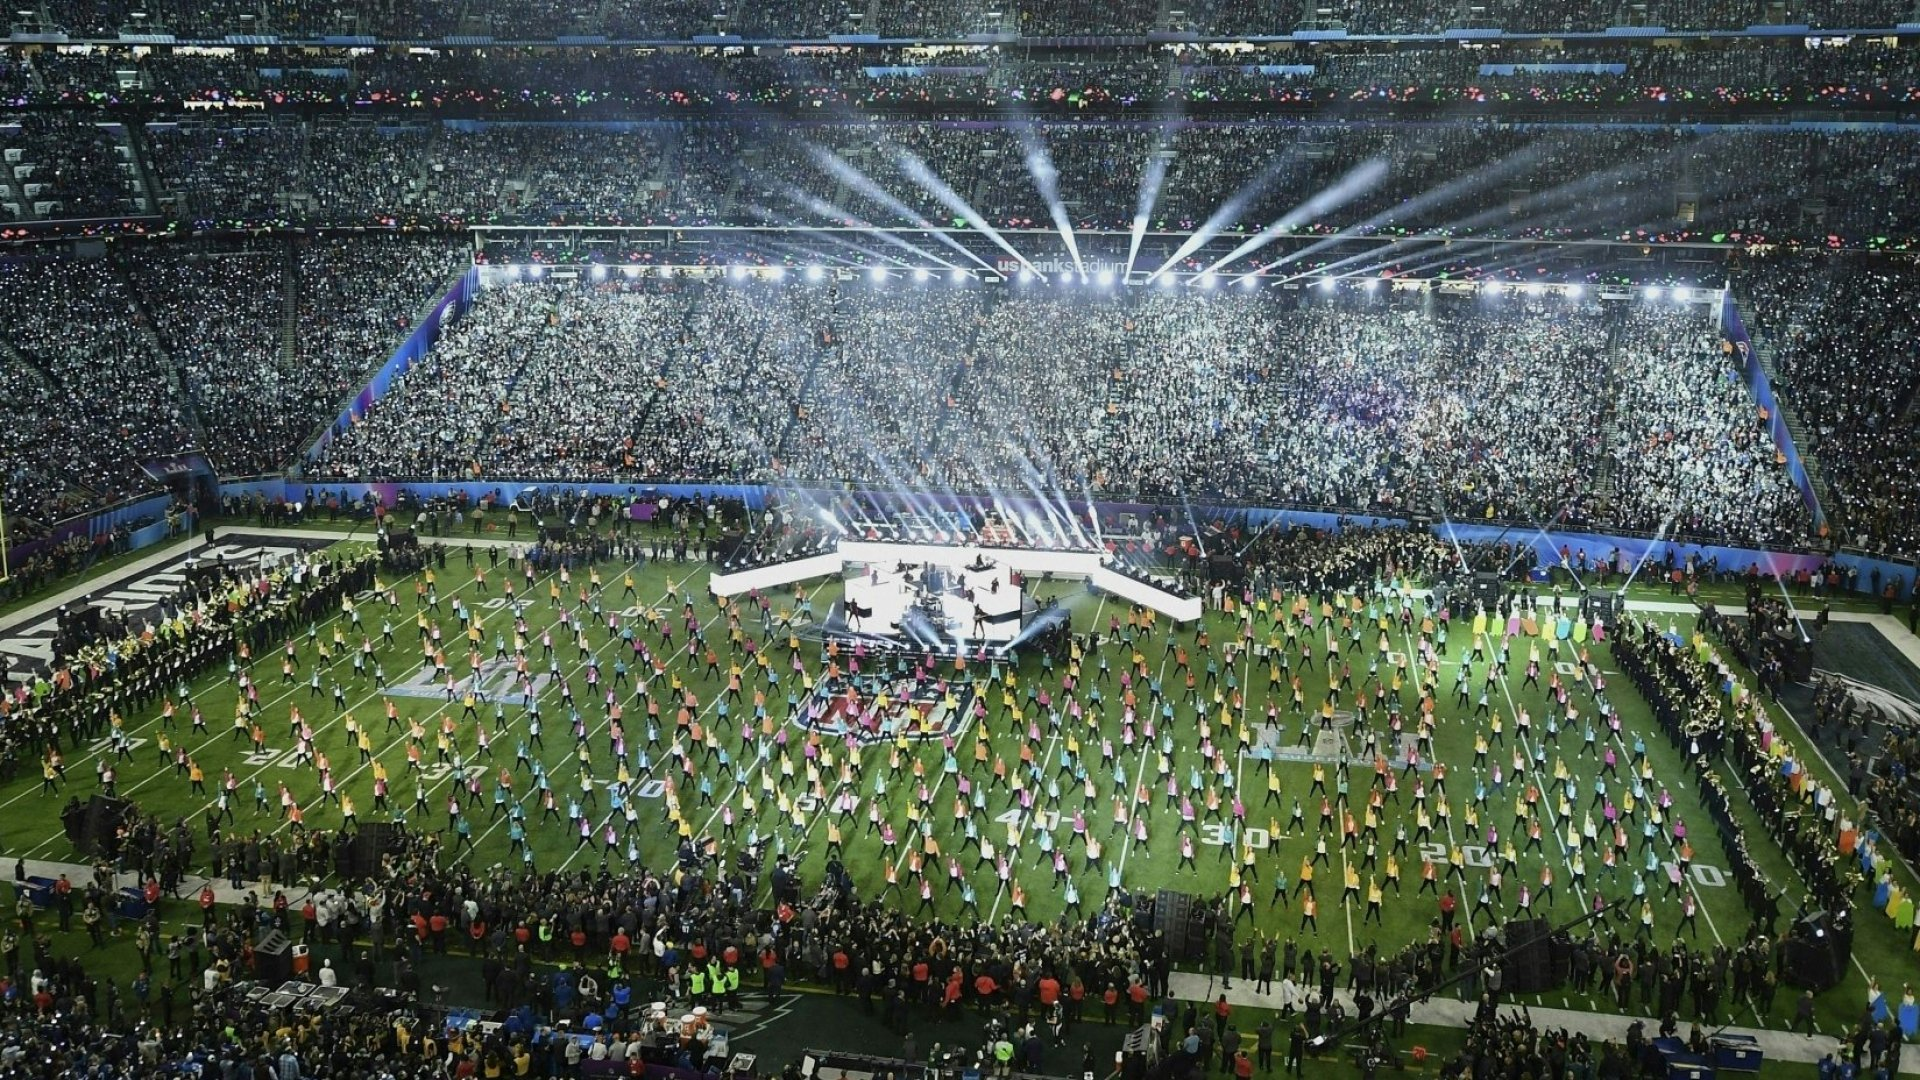 The Super Bowl Is Big Business. Here's How Startups Can Capitalize